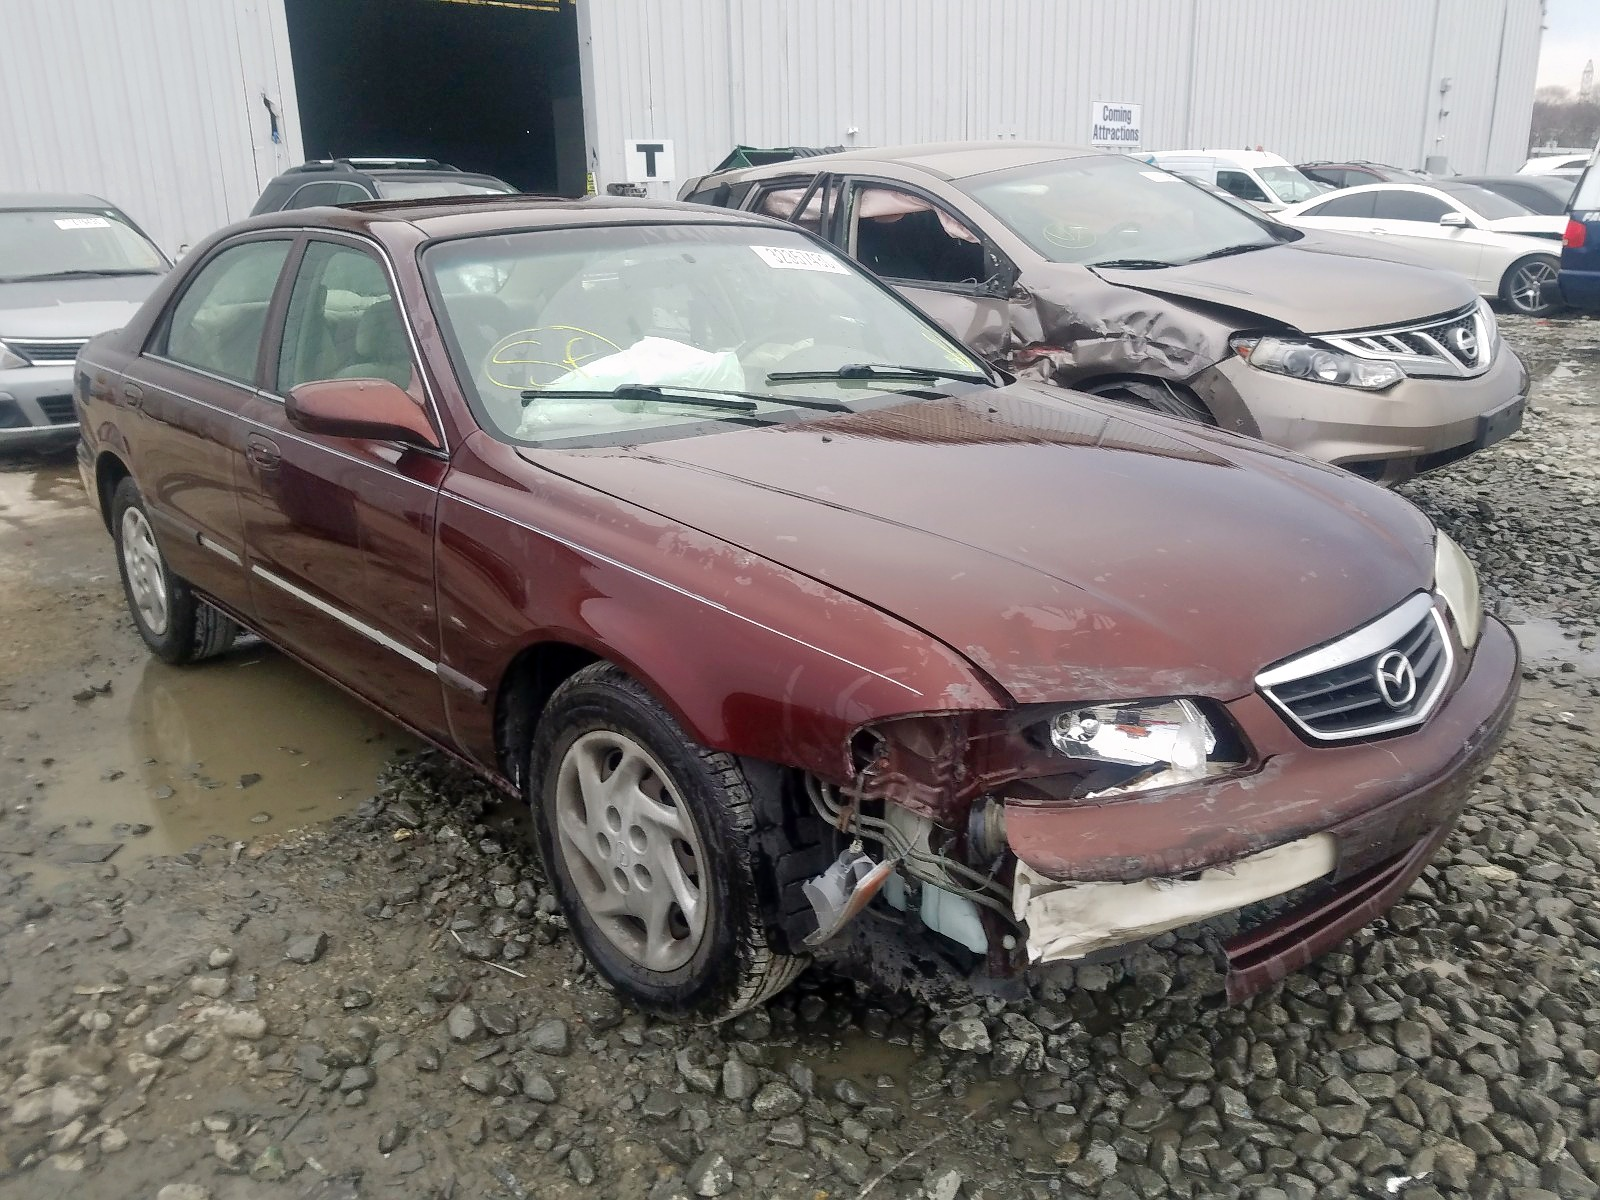 2001 mazda 626 es for sale at copart windsor nj lot 32357430 salvagereseller com salvagereseller com